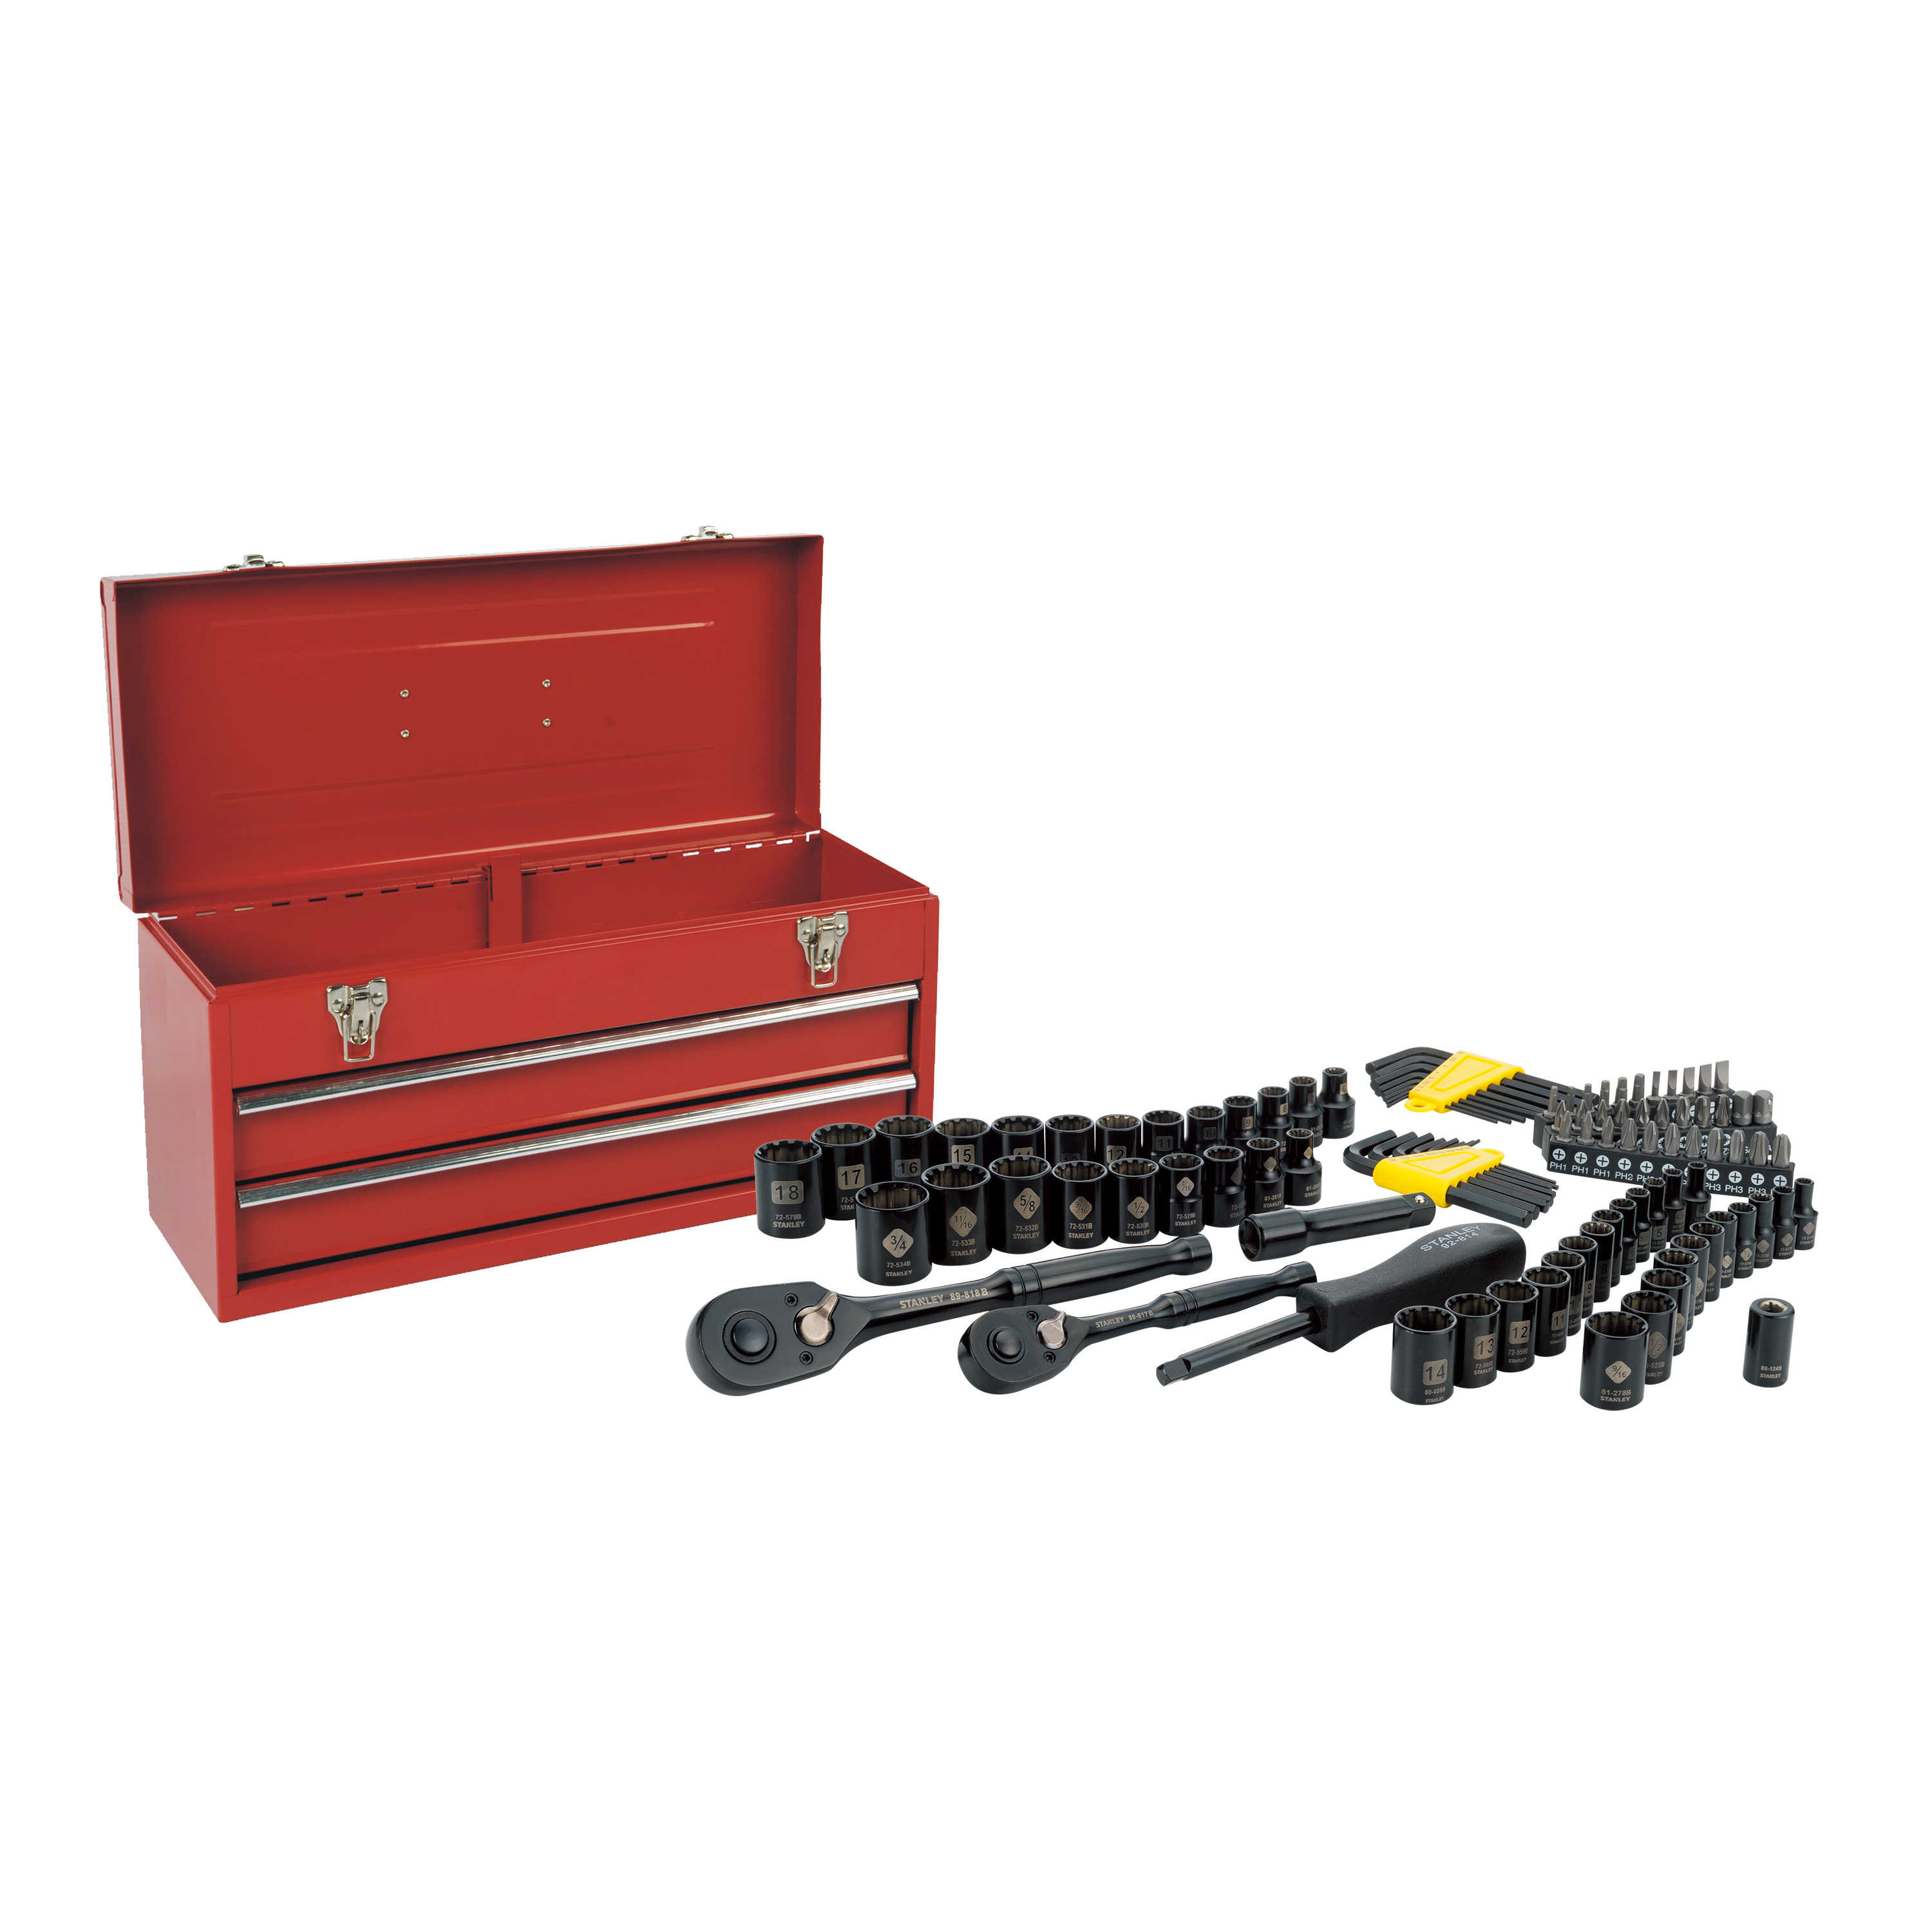 STANLEY 101-Piece Universal Mechanics Tool Set with Metal Tool Box | STMT81564